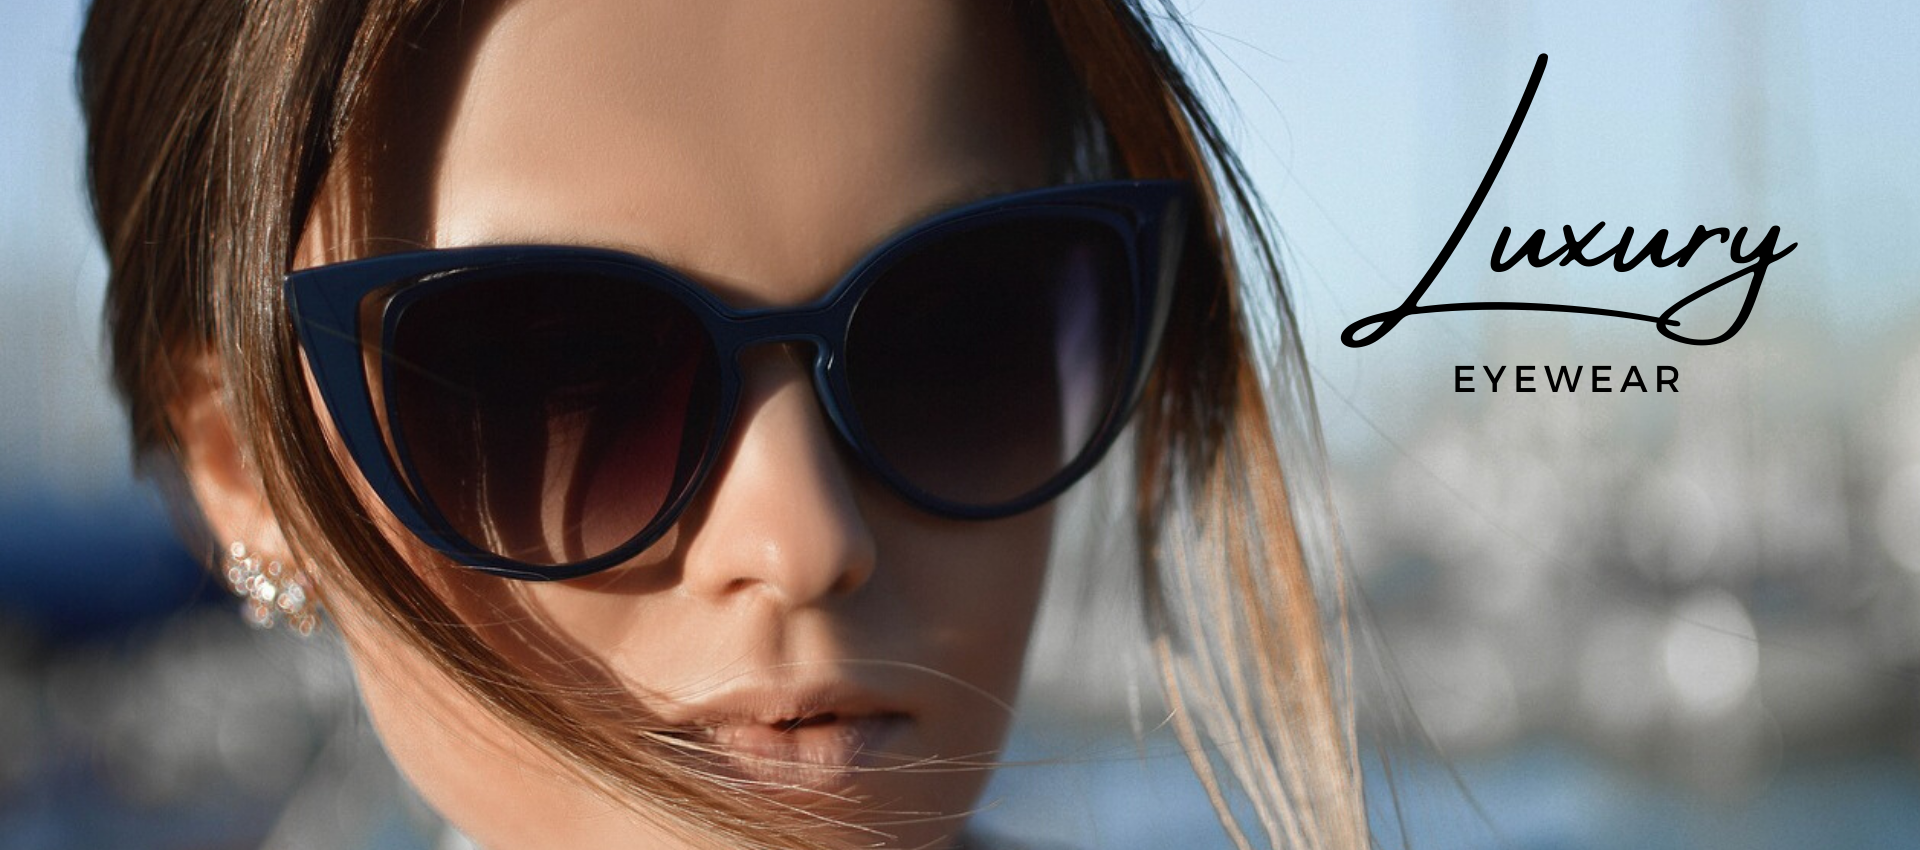 sunglass distributors south africa